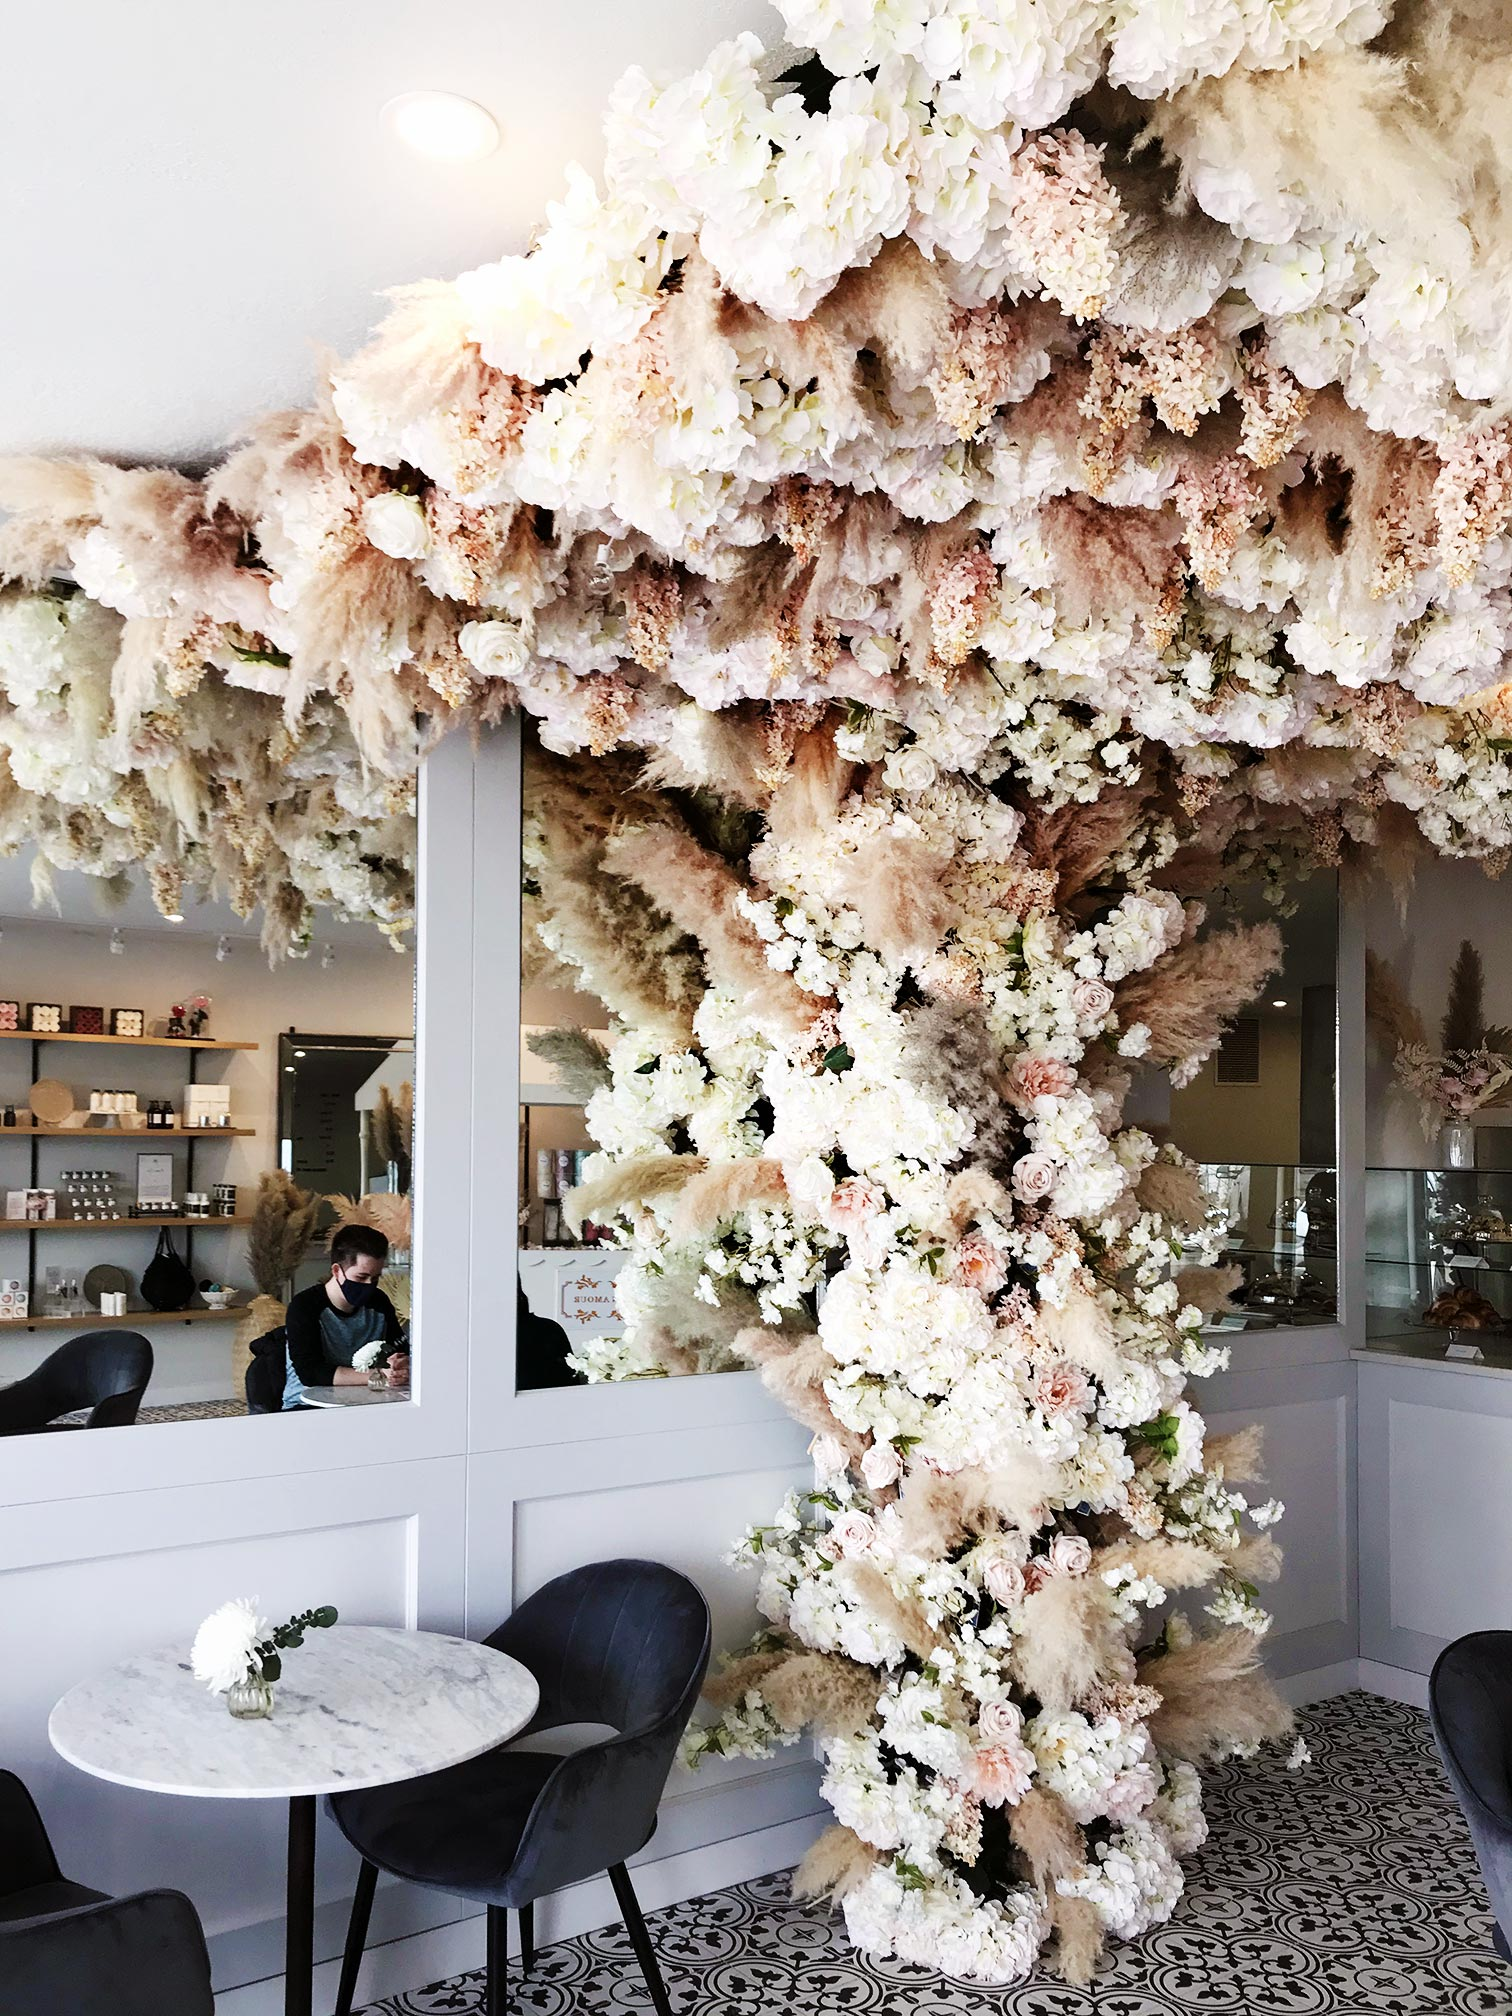 Faux flowers scaling the wall and ceiling